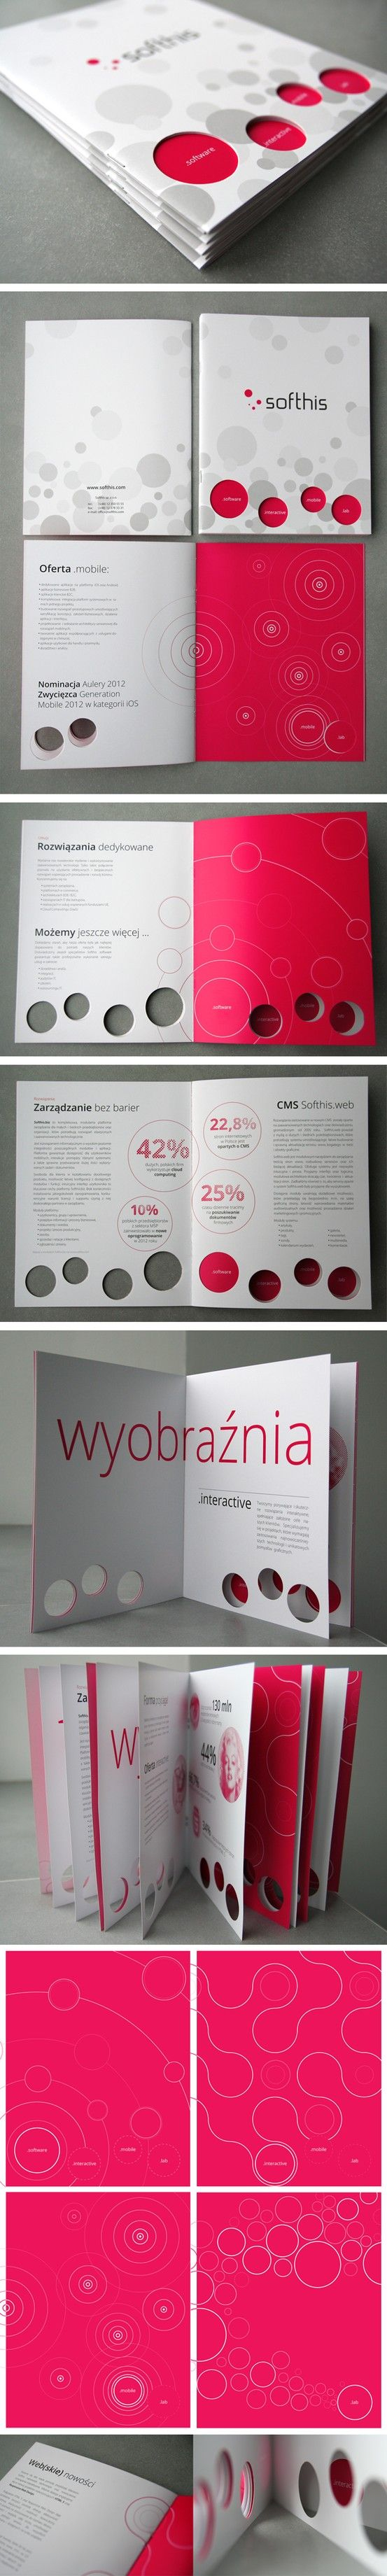 cut out layers sections signatures brand book design layout colour